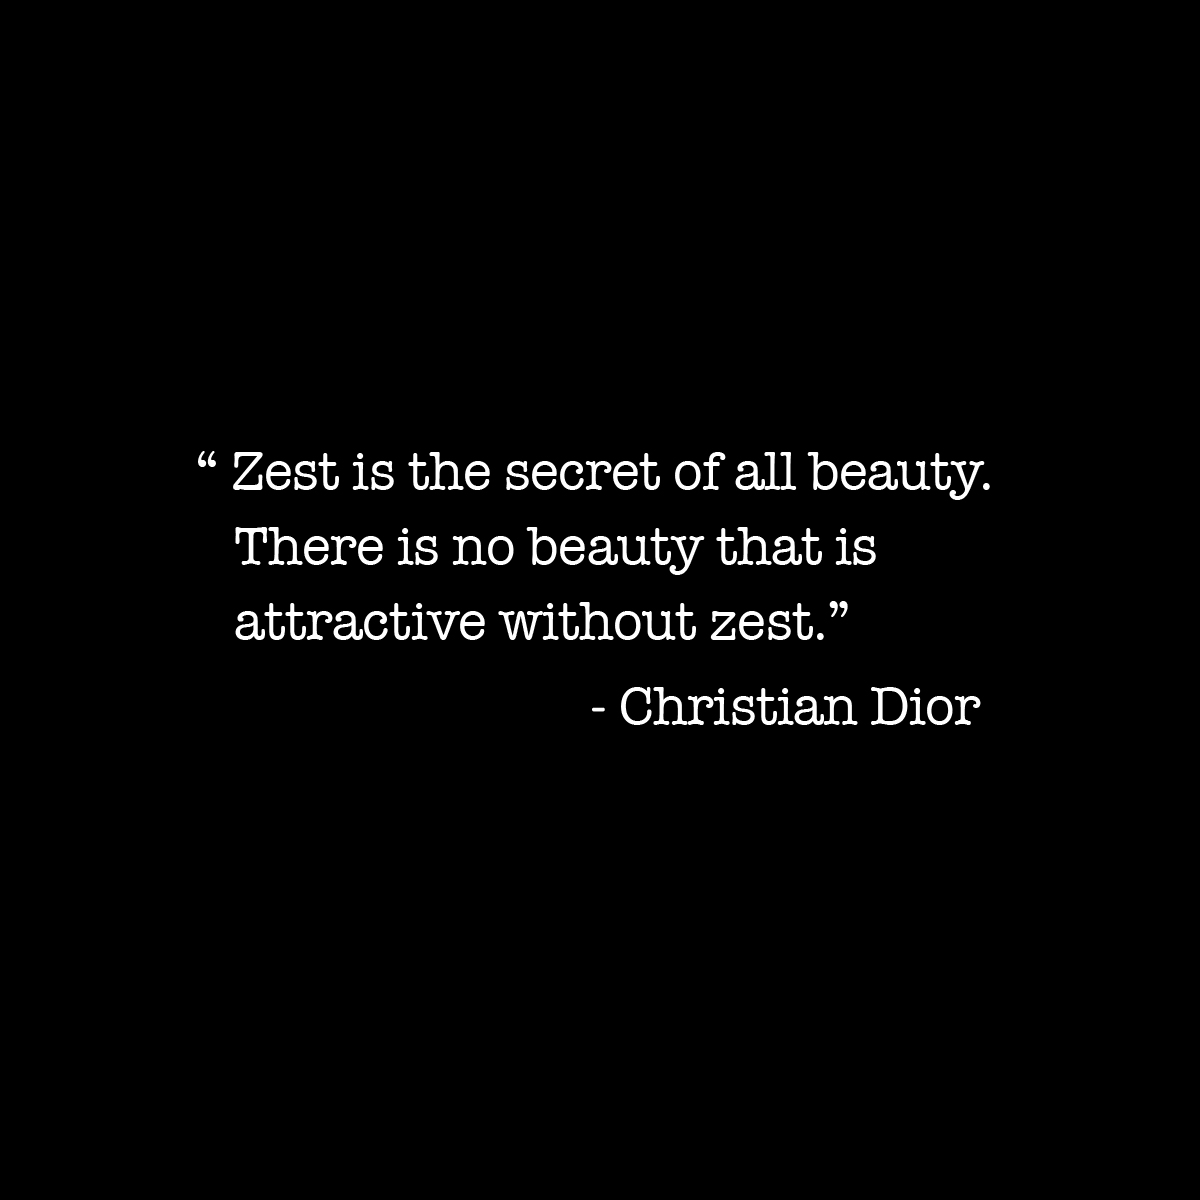 Christian Dior's quote #5